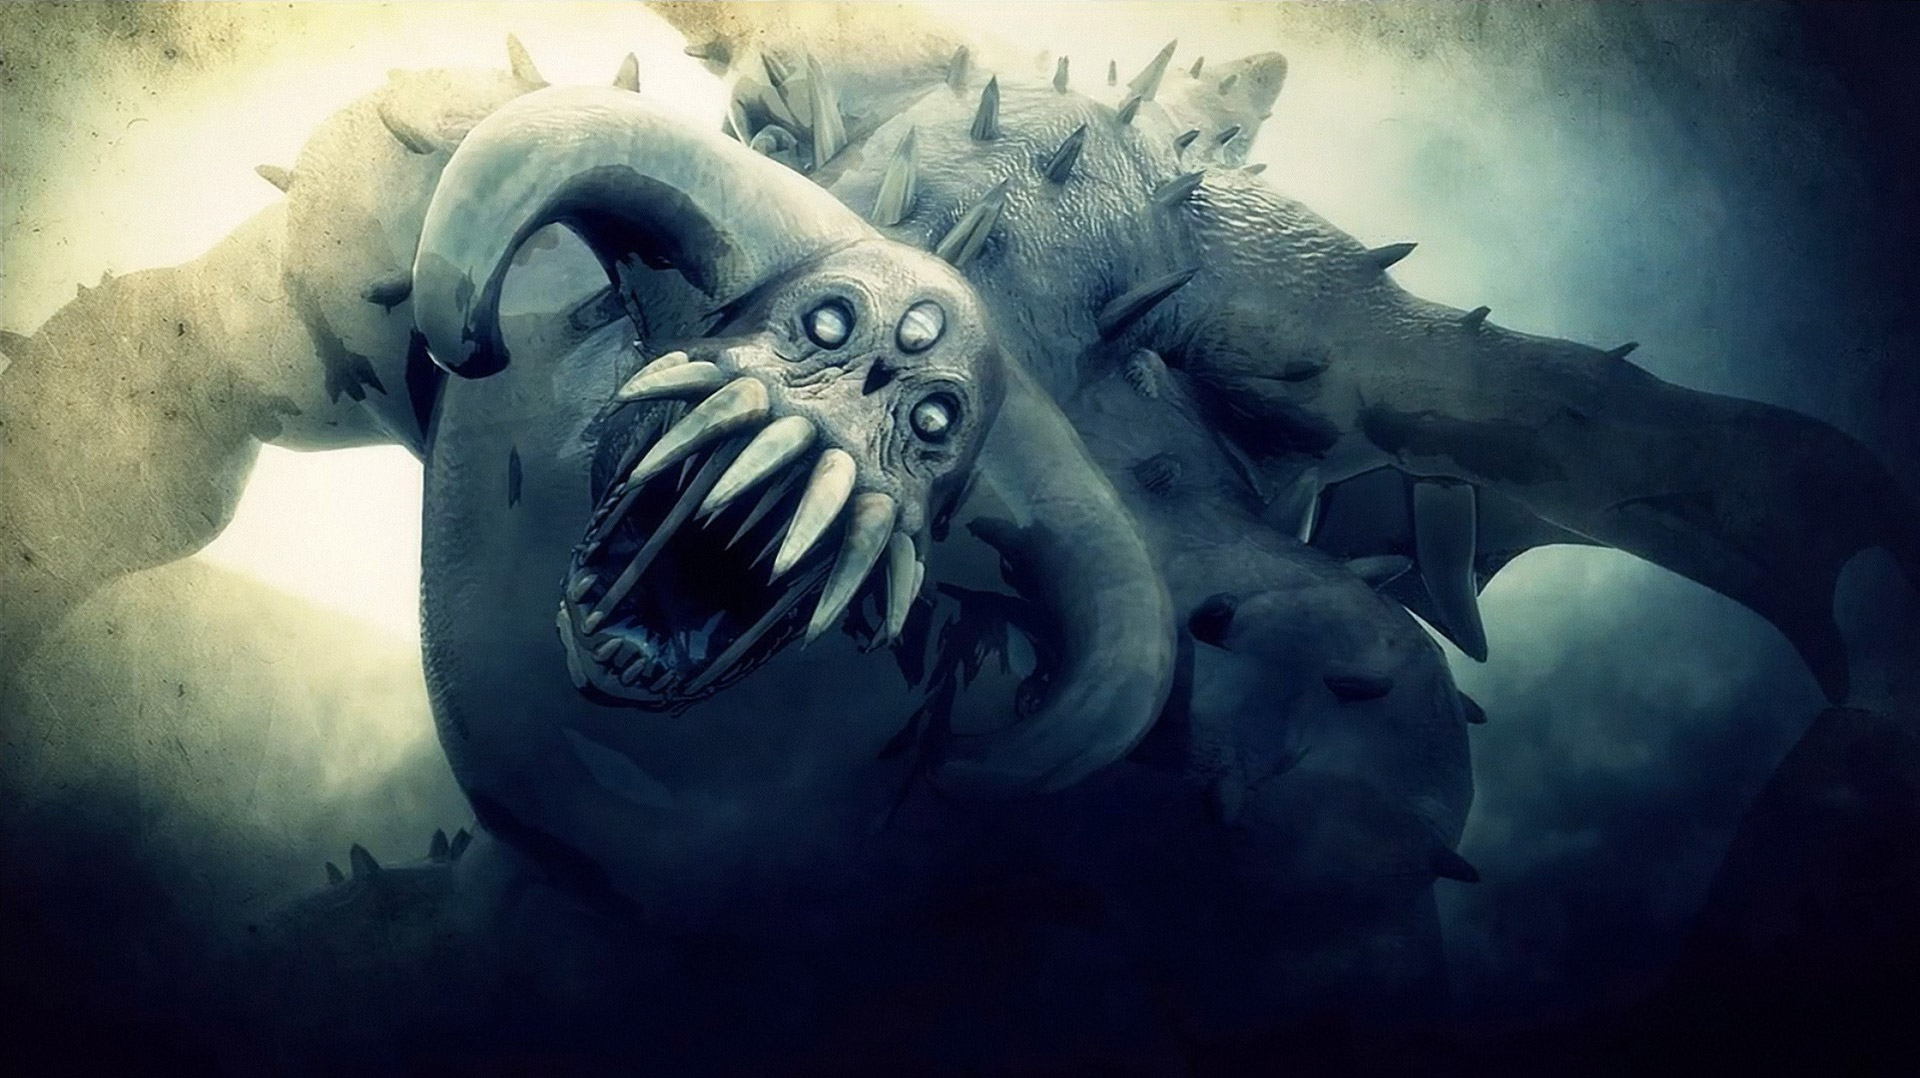 Bluepoint teases 'a big one' for PlayStation 5 following Shadow of the Colossus screenshot